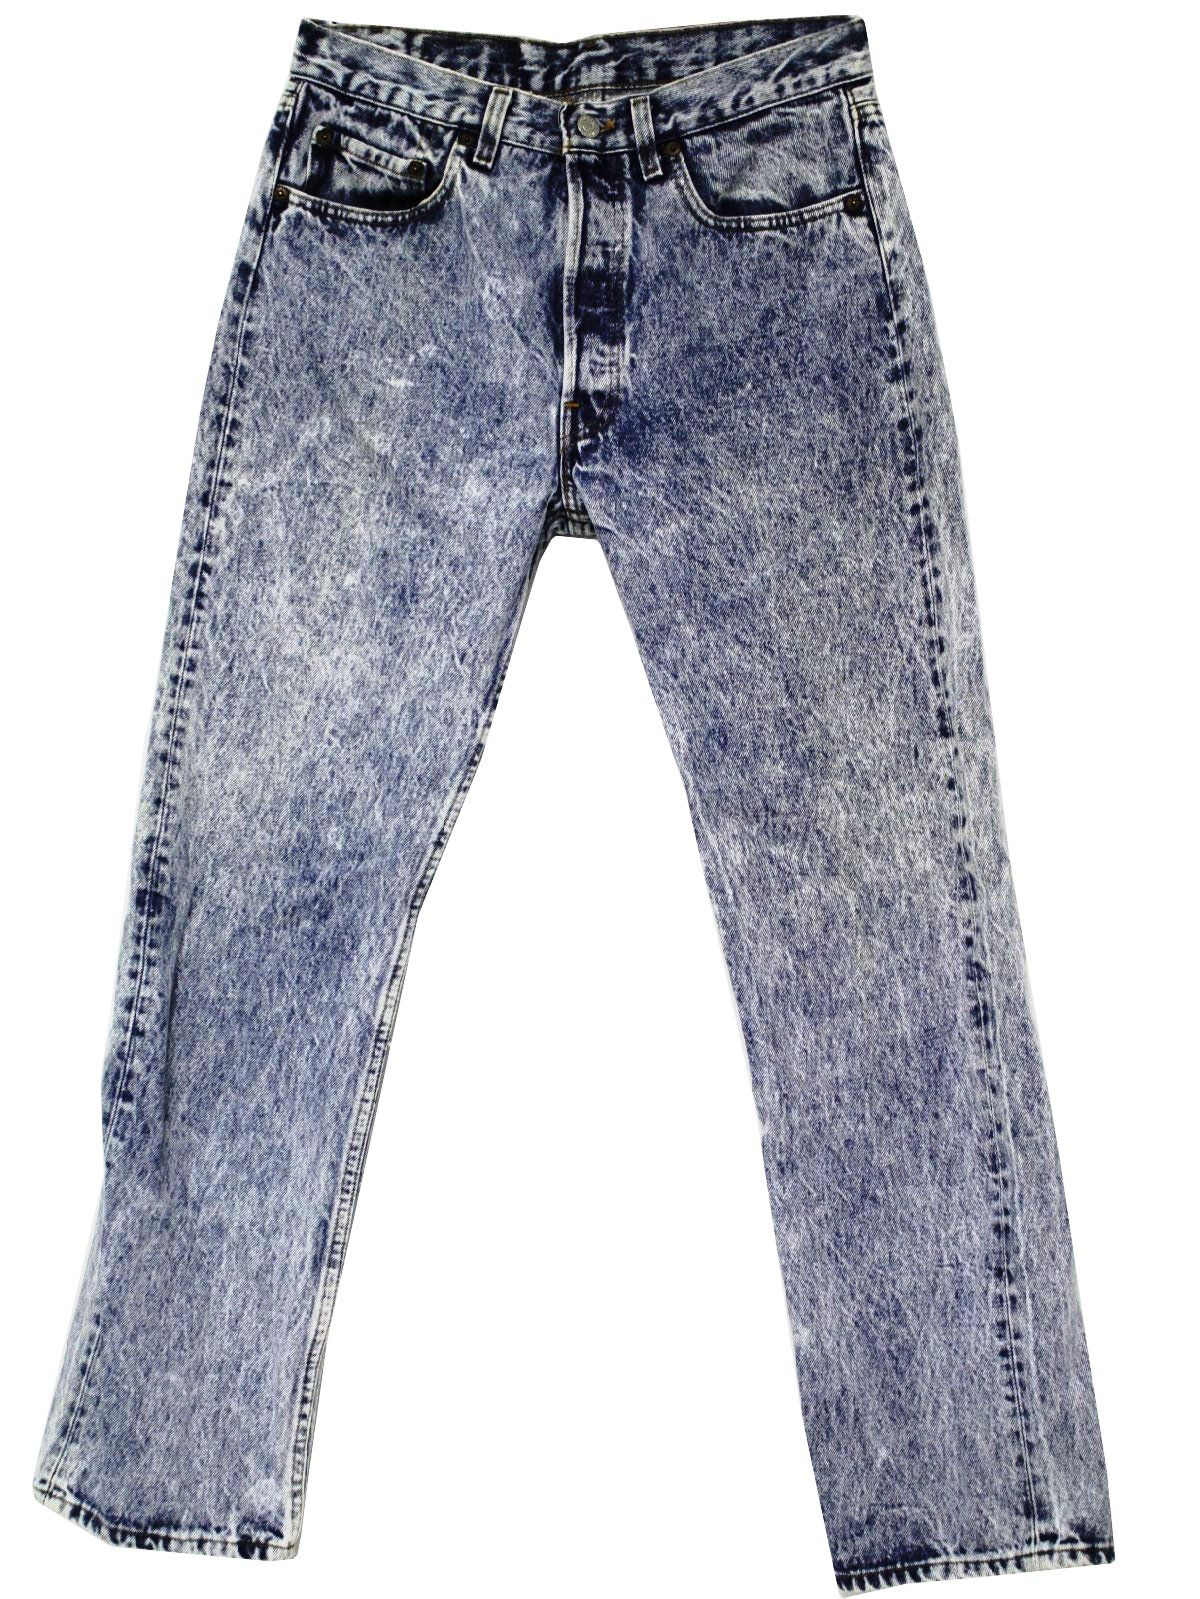 Stonewashed Jeans - an 80s fashion statement. | My youth | Pinterest